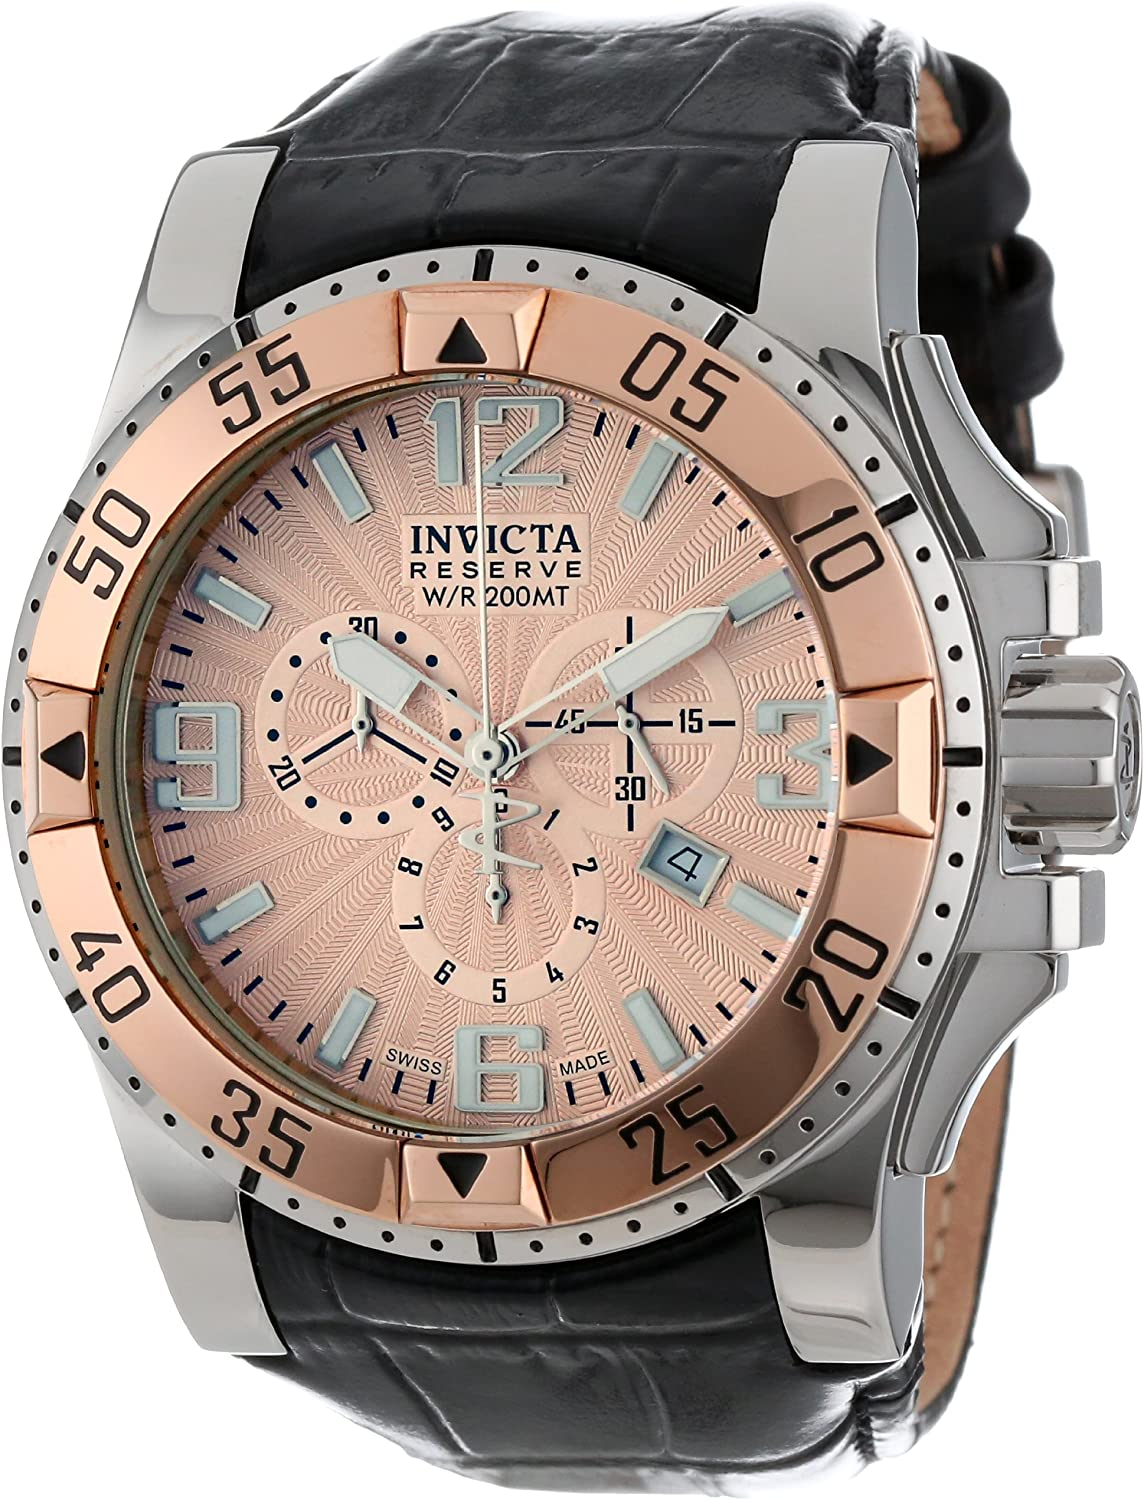 Invicta Men s 10901 Excursion Reserve Chronograph Rose Gold Tone Textured Dial Black Leather Watch